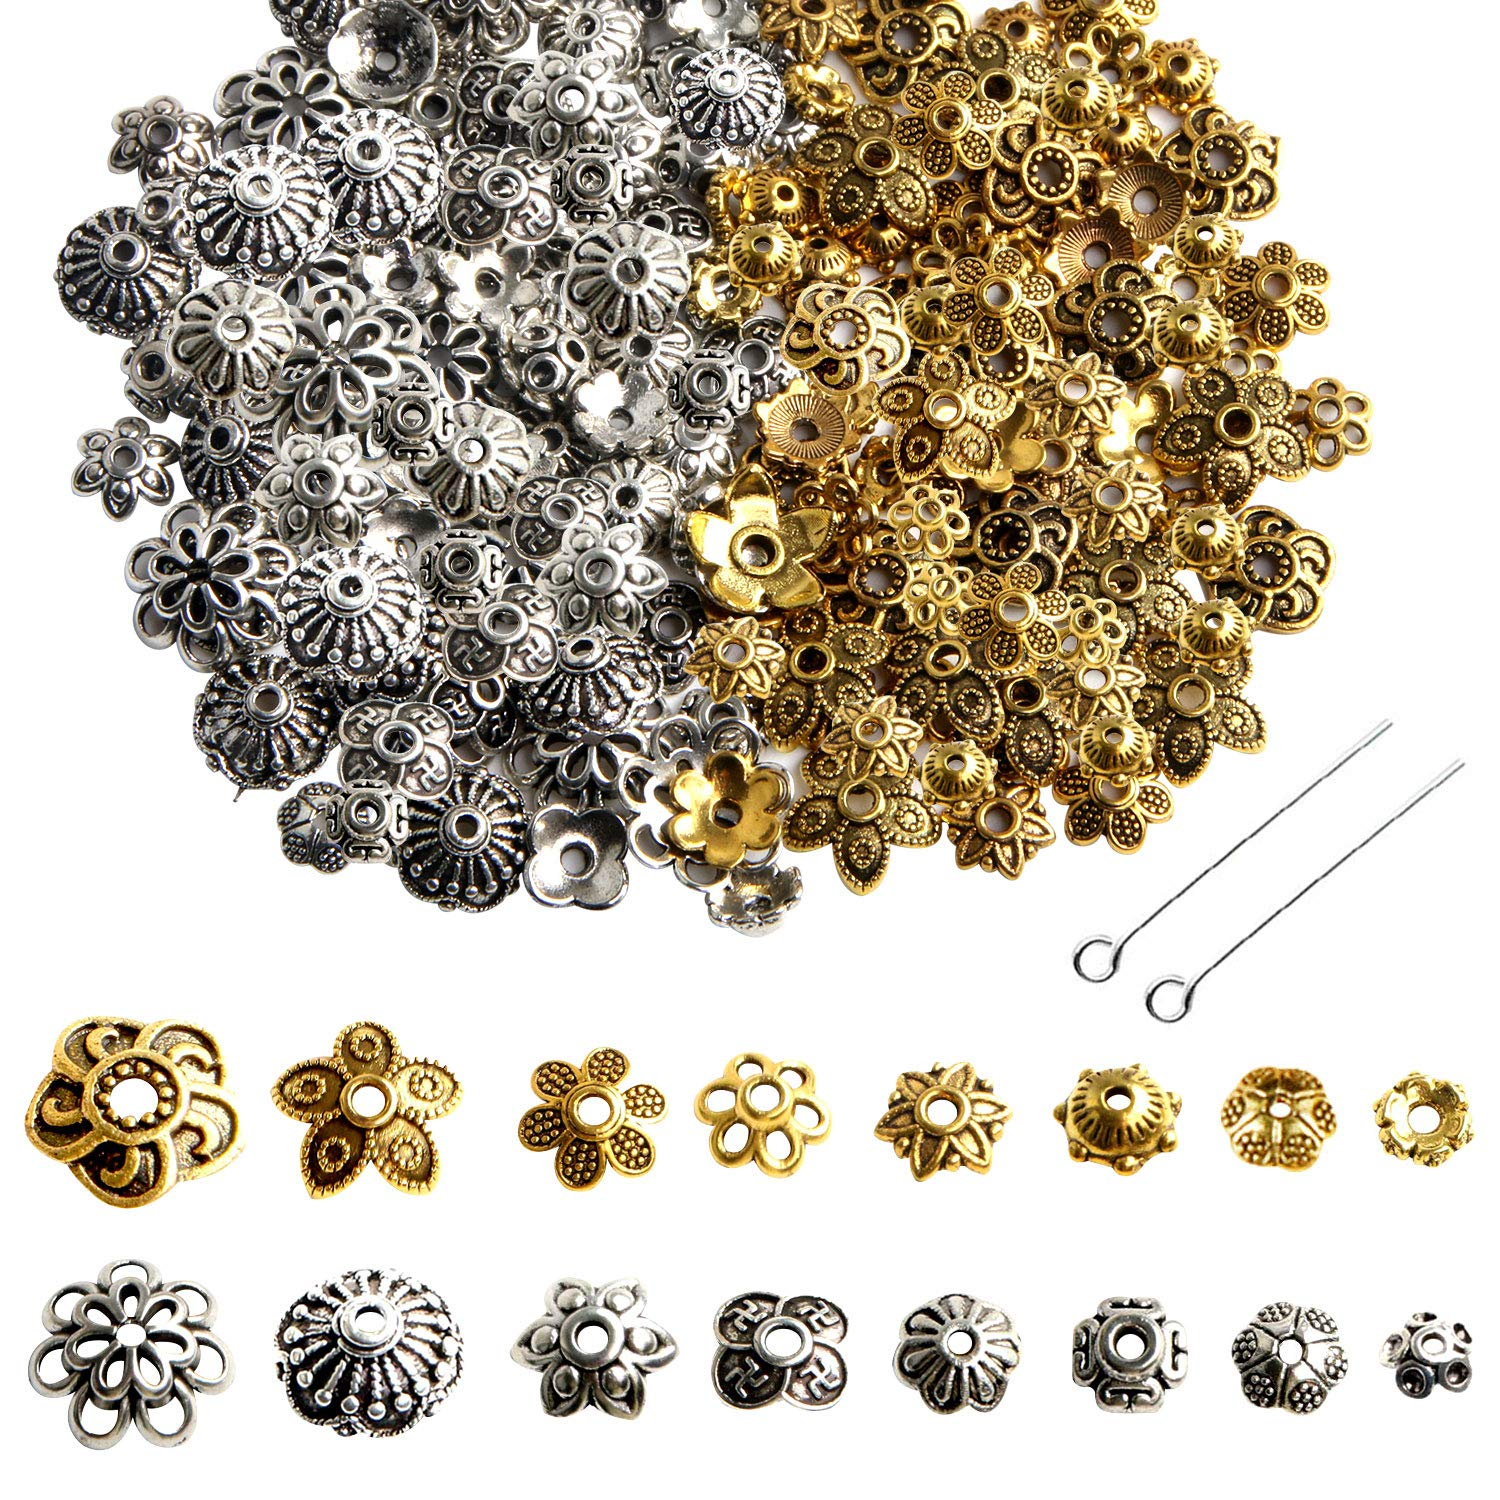 Ship Straight and Unbent Eye Pins for Jewelry Making Flat-Head Brass Dressmaker Eyepins 150 Pieces, 3 Inches, 76mm, 22 Gauge Jewellery Making Kit for Crafting Earrings and Bracelets